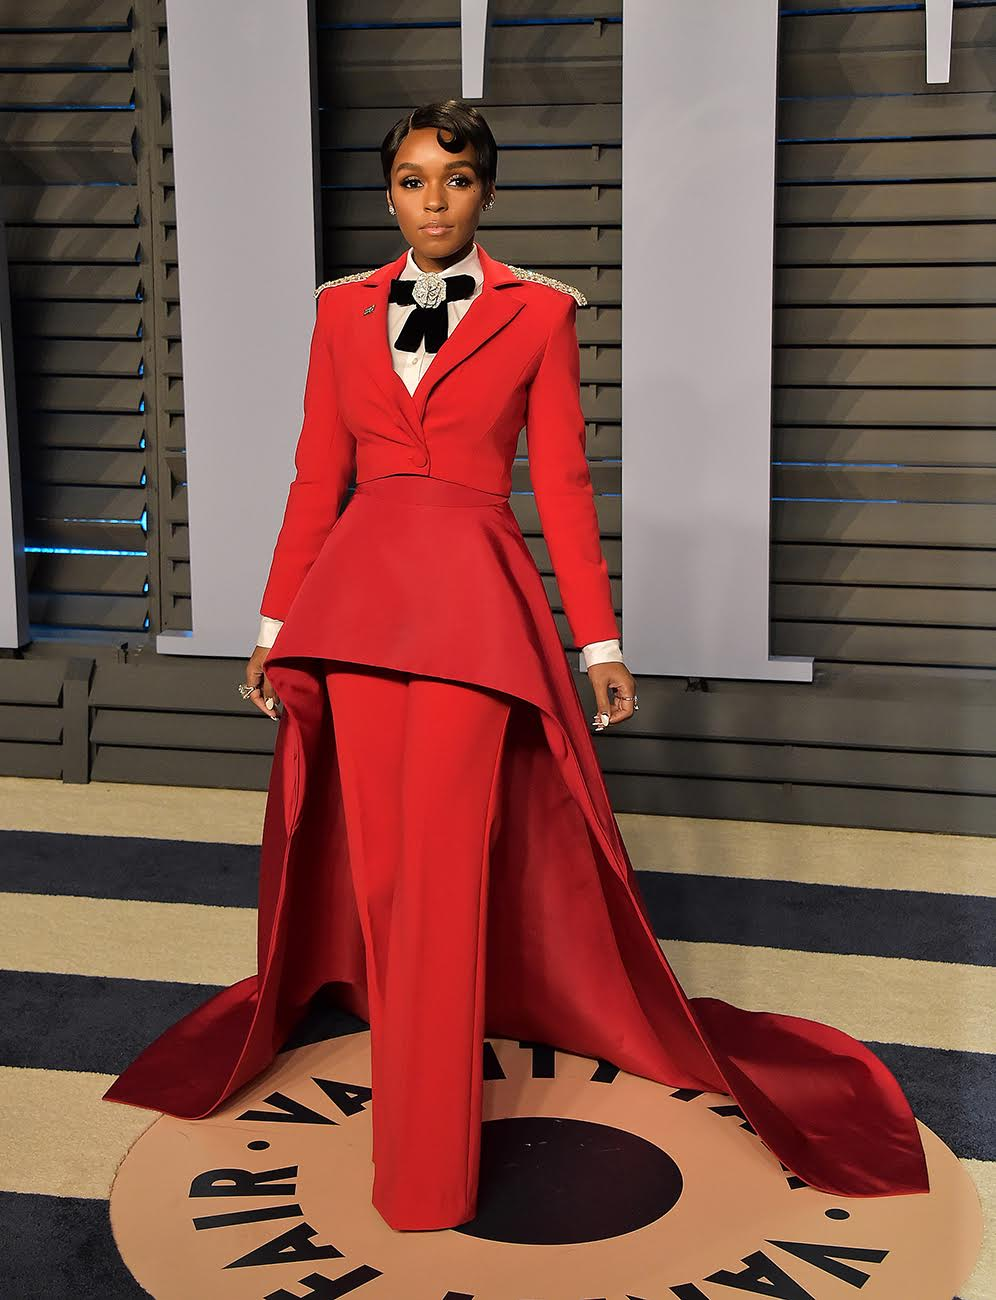 2018 Vanity Fair Oscar Party at the Wallis Annenberg Center for the Performing ArtsPictured: Janelle MonaeRef: SPL1667463  040318  Picture by: PG / Splash NewsSplash News and PicturesLos Angeles:310-821-2666New York:212-619-2666London:870-934-2666photodesk@splashnews.com